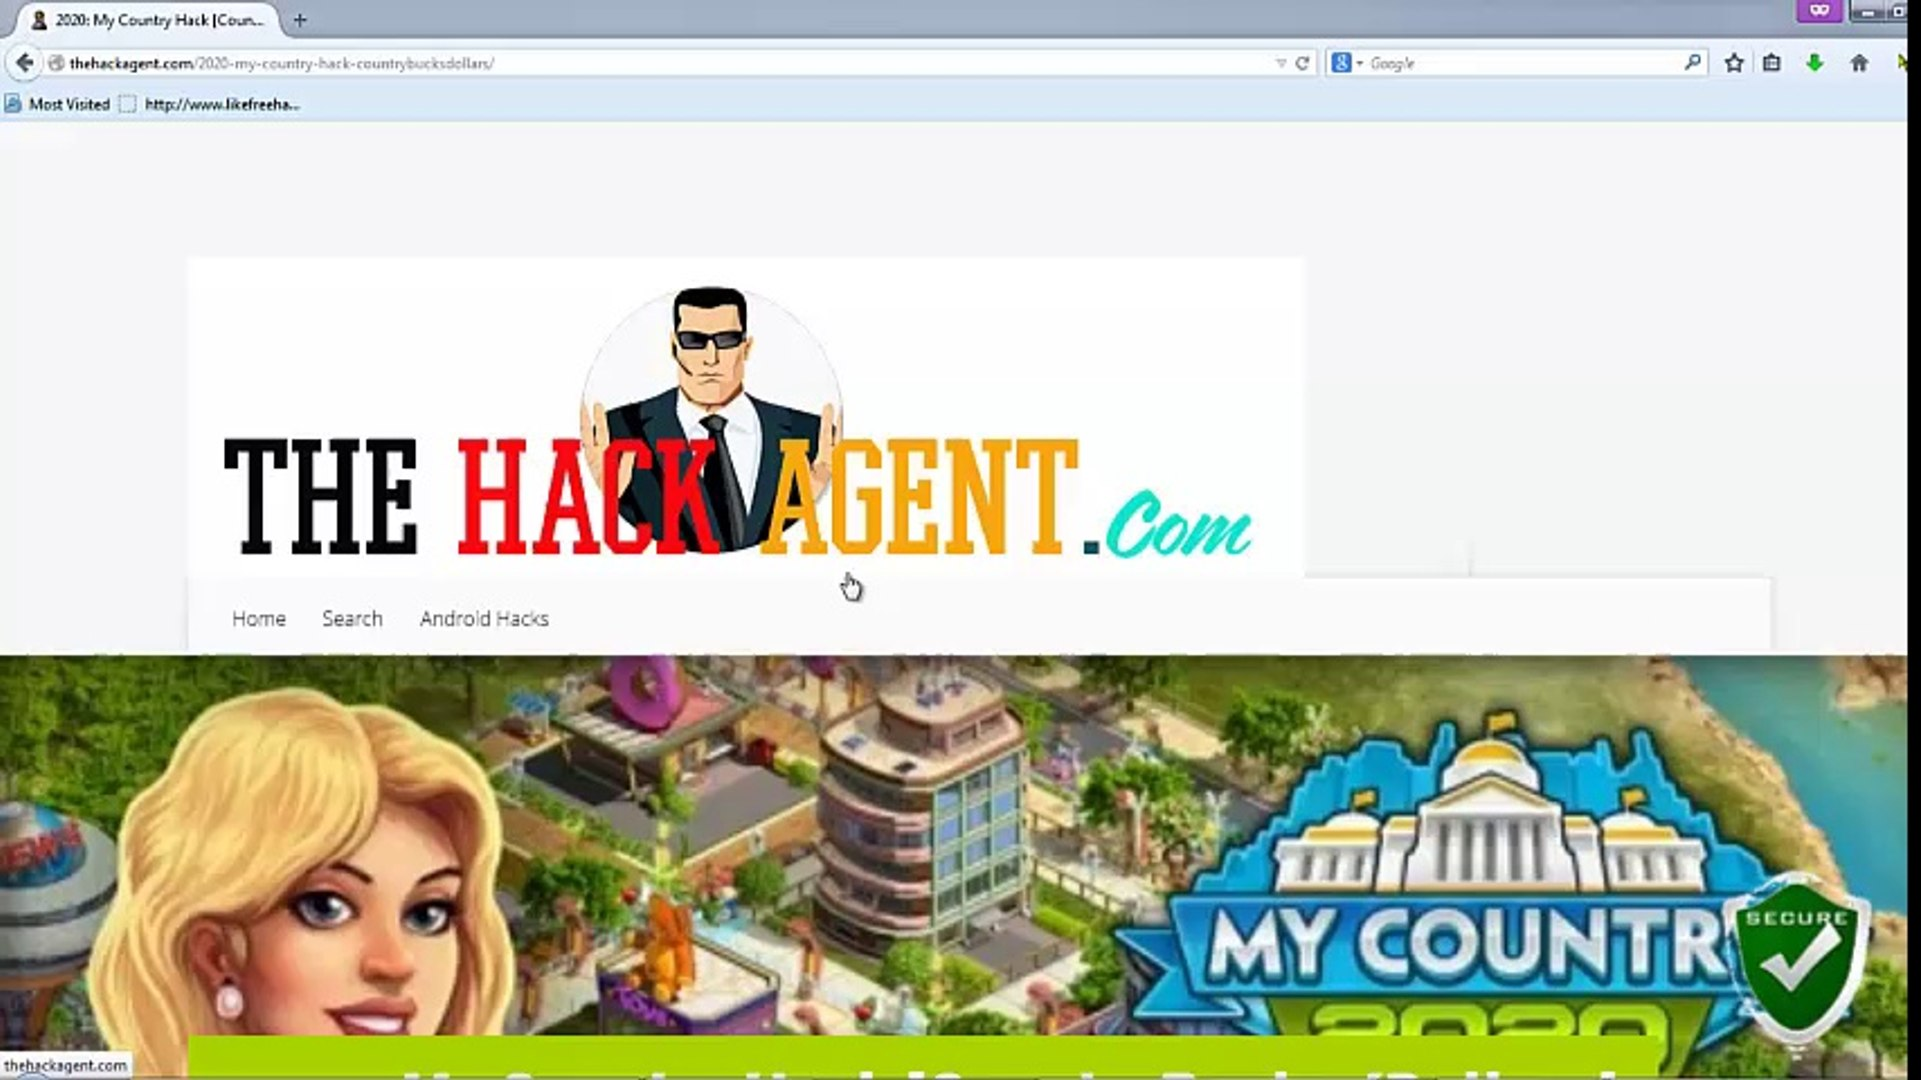 Download 2020: My Country Hack [Unlimited CountryBucks/Dollars] Android/iOS  Updated May 2014 Free